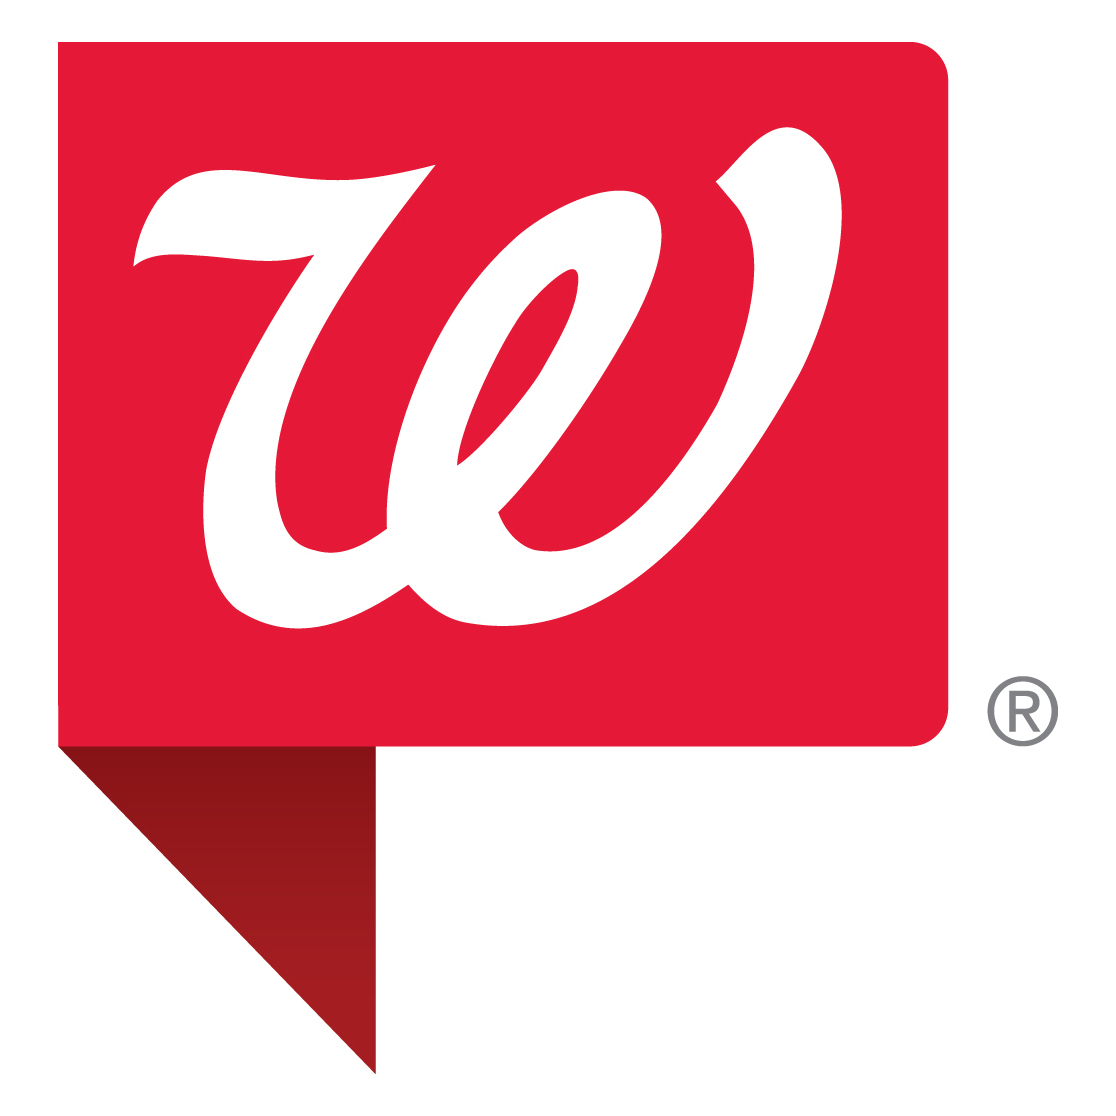 Walgreens - Allentown, PA - Pharmacist